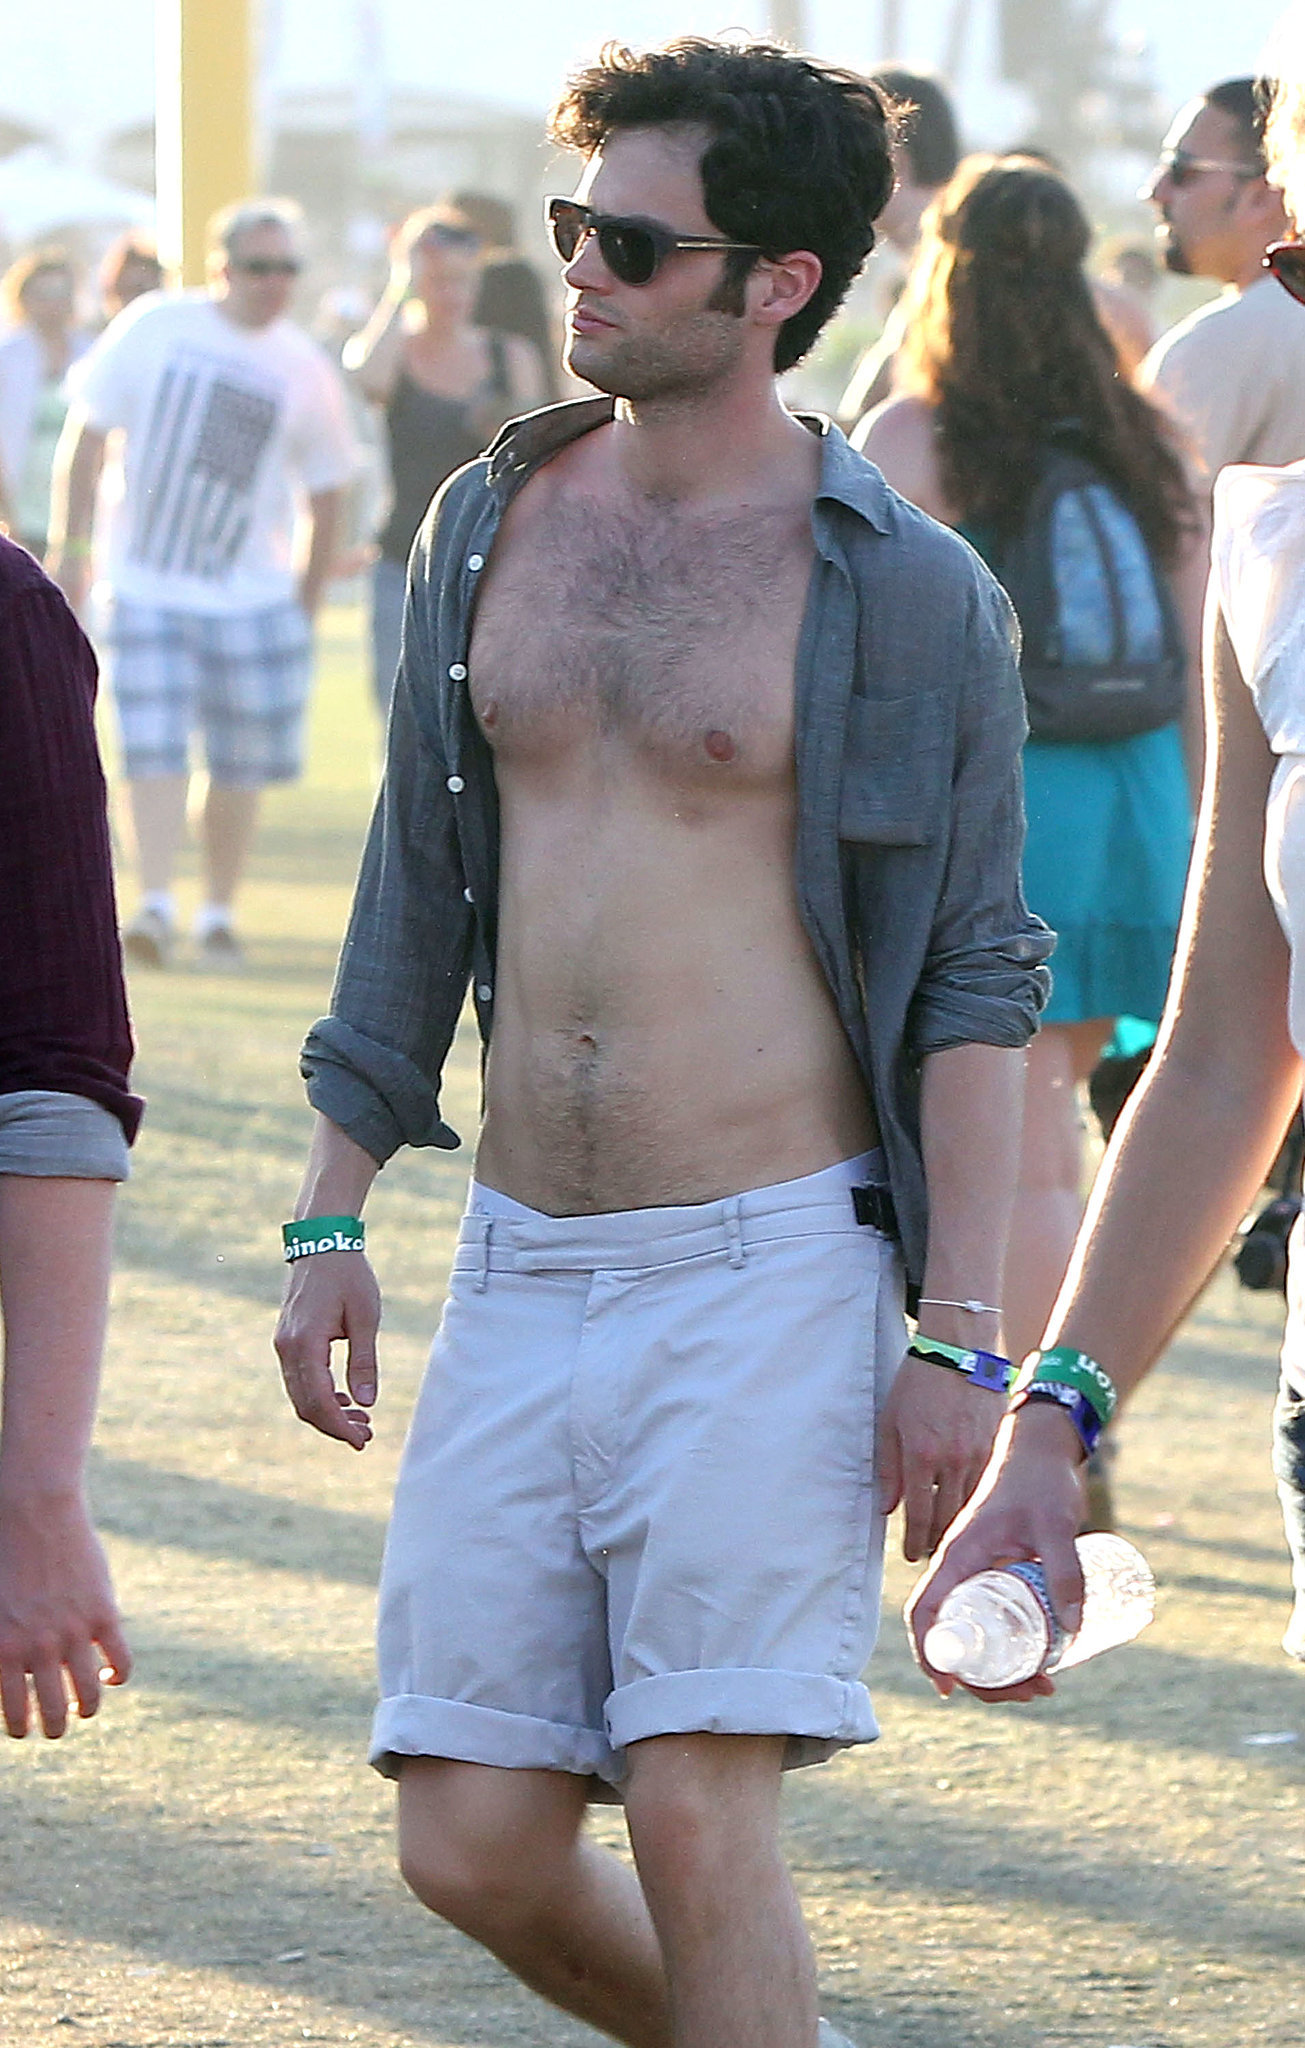 Penn Badgley went shirtless in the 2011 crowd